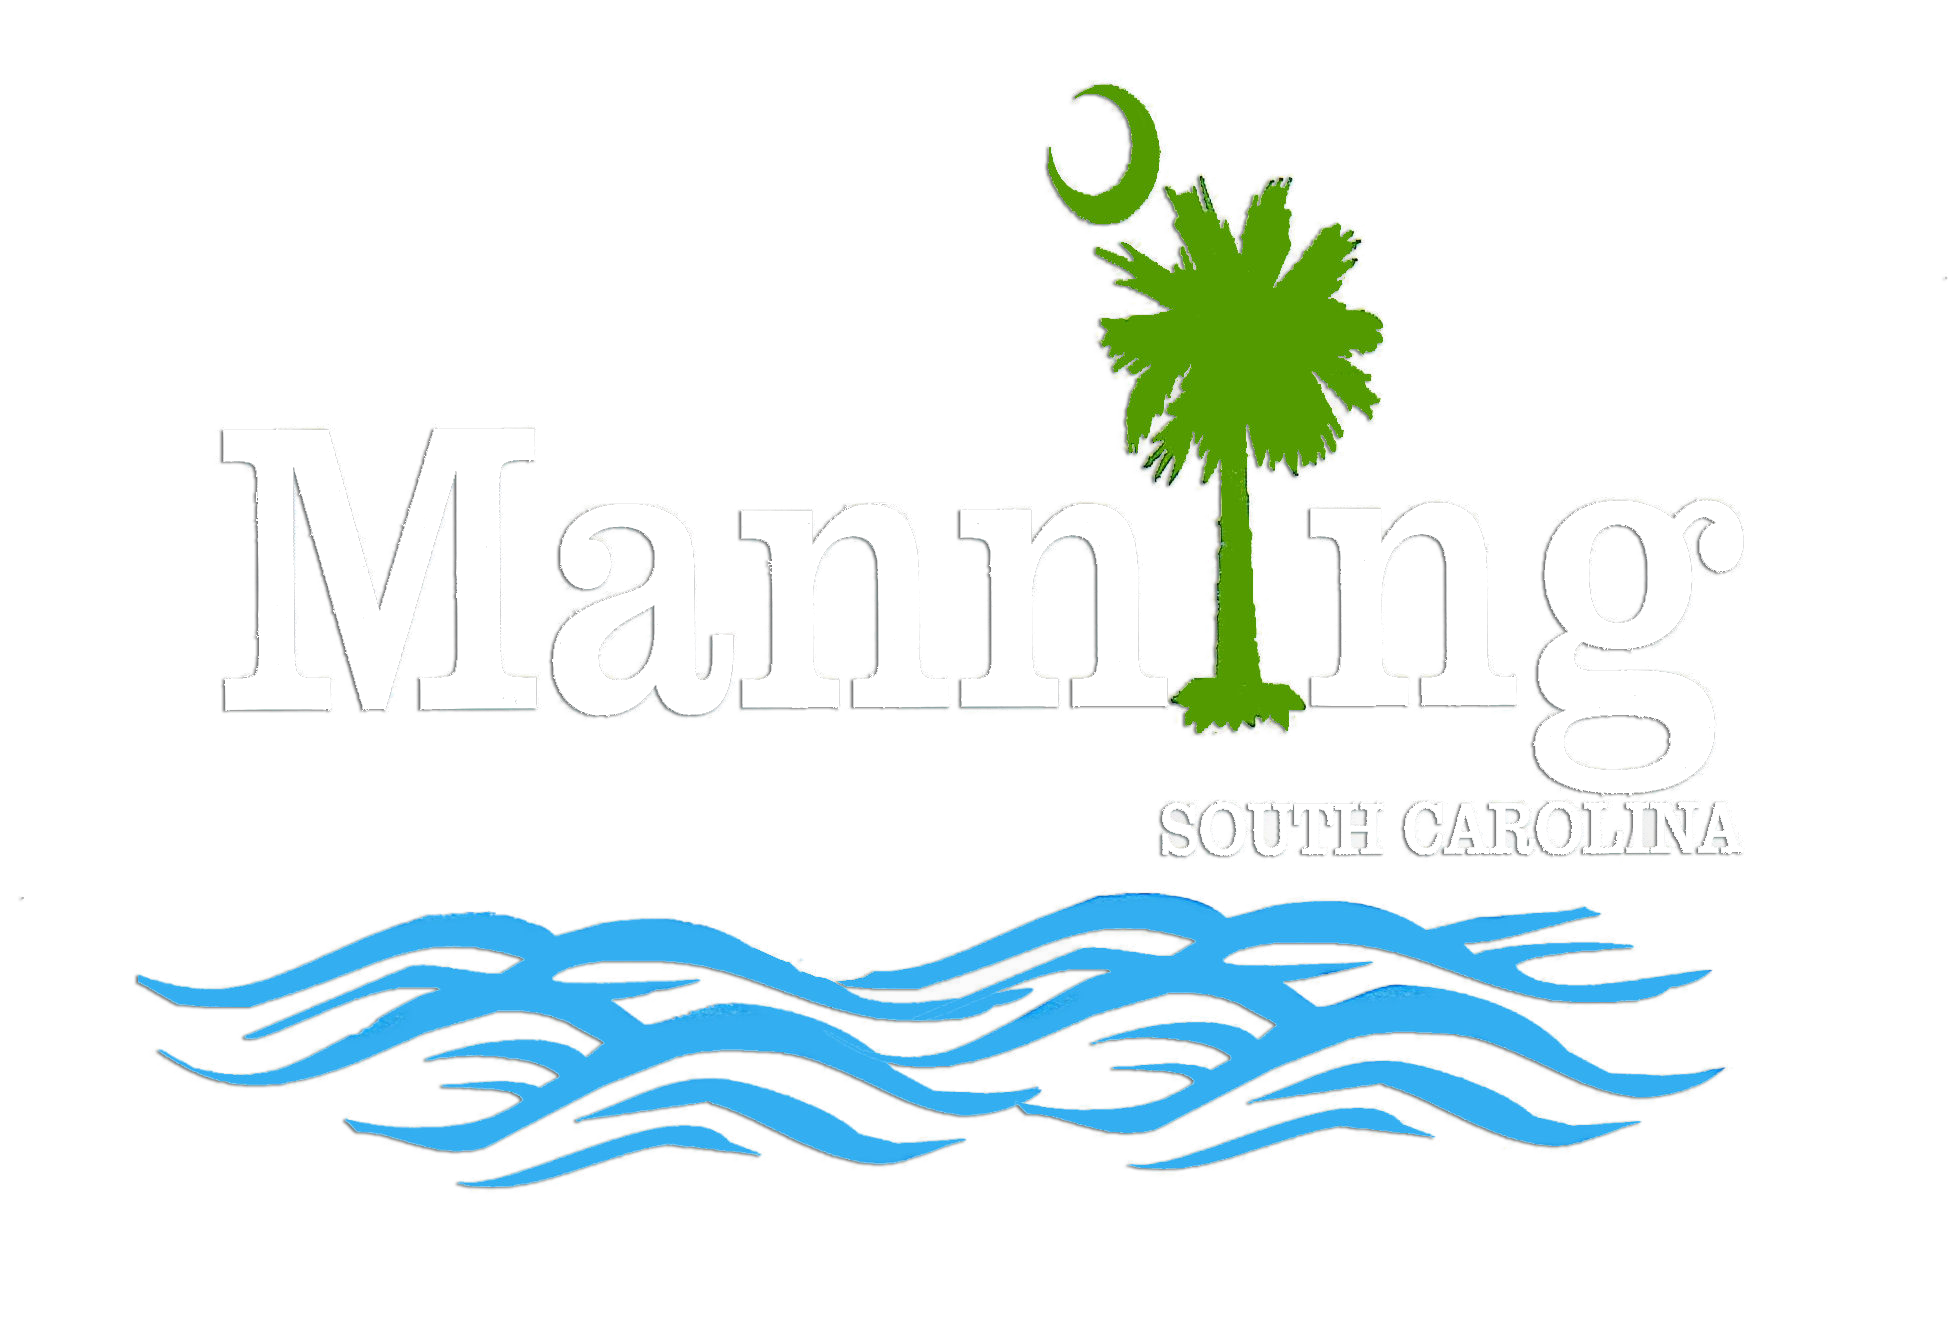 City of Manning